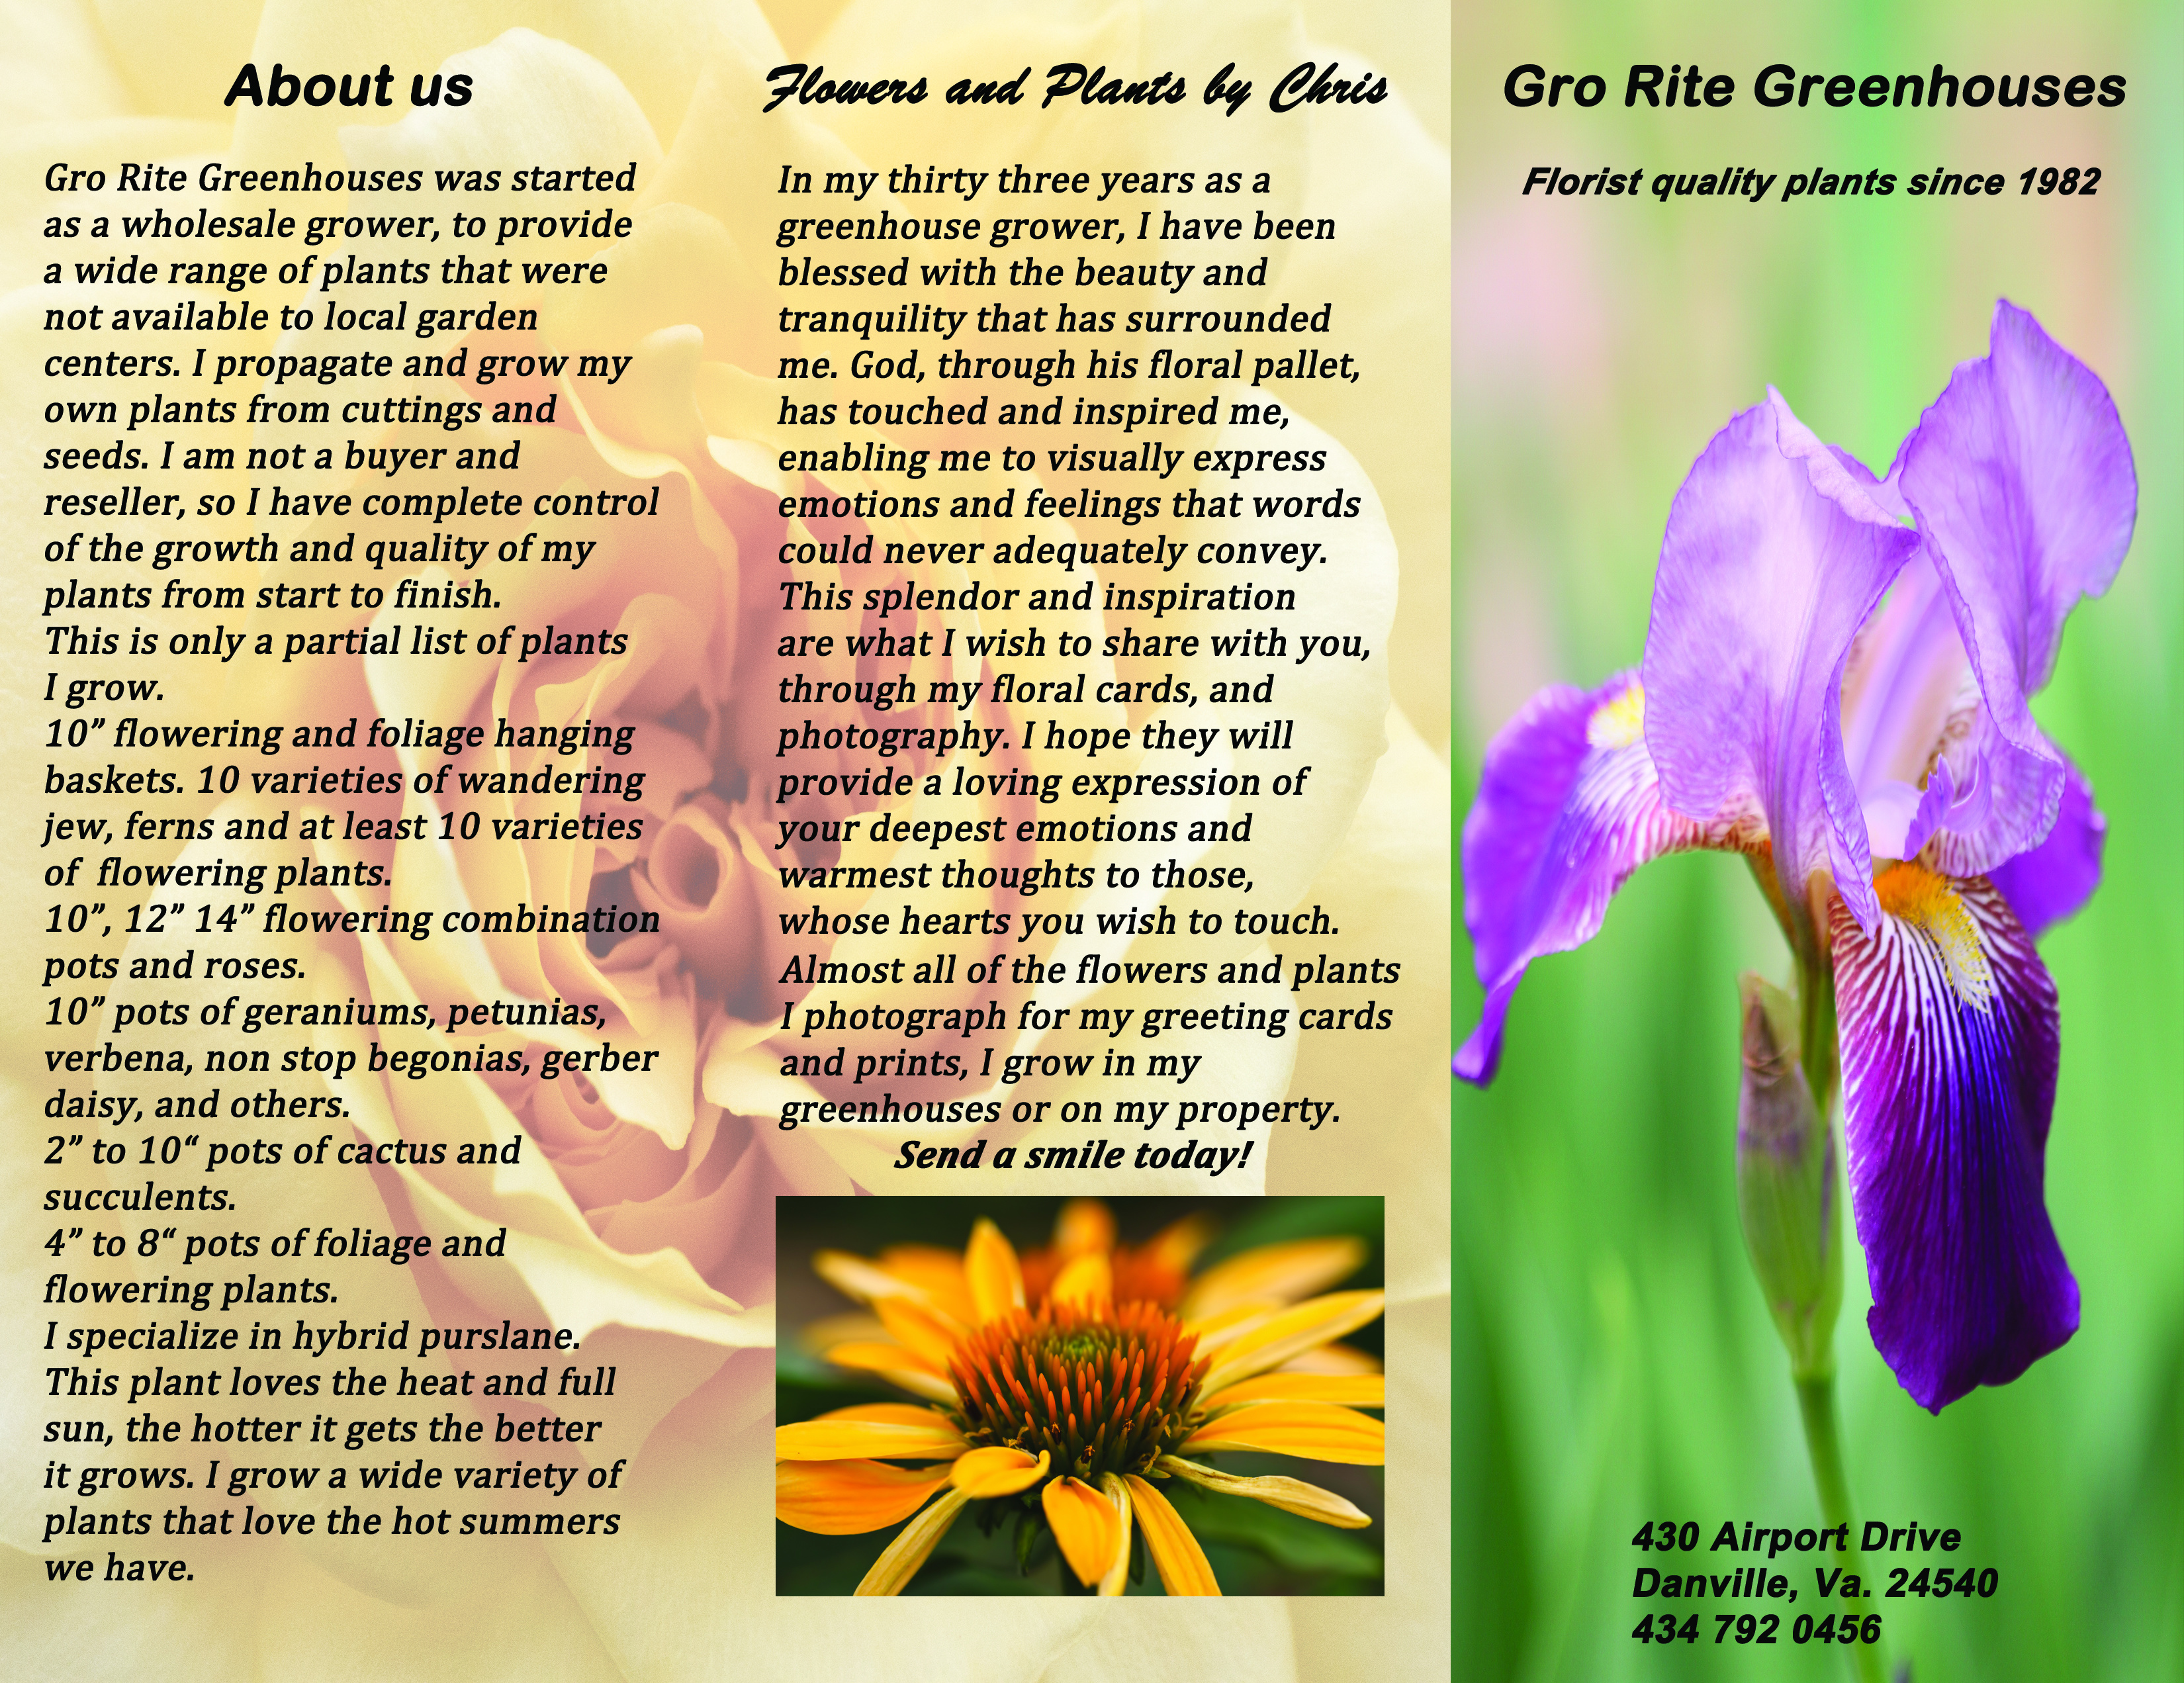 Gro Rite Greenhouses brochure